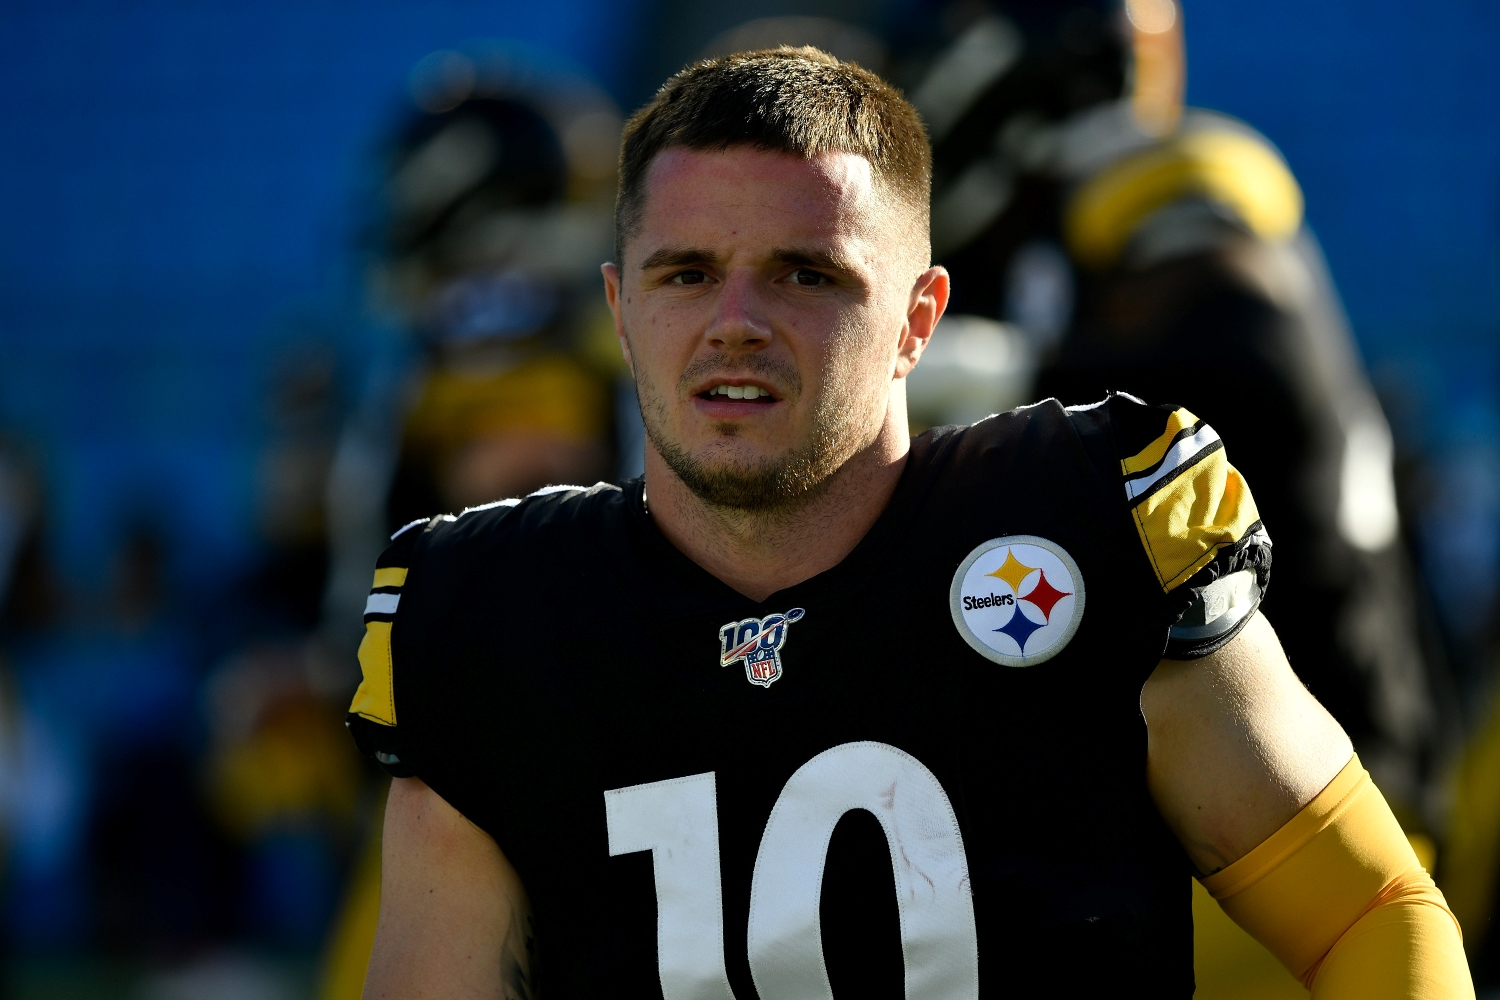 Ryan Switzer went from playing for the Pittsburgh Steelers to suiting up for the rival Cleveland Browns.